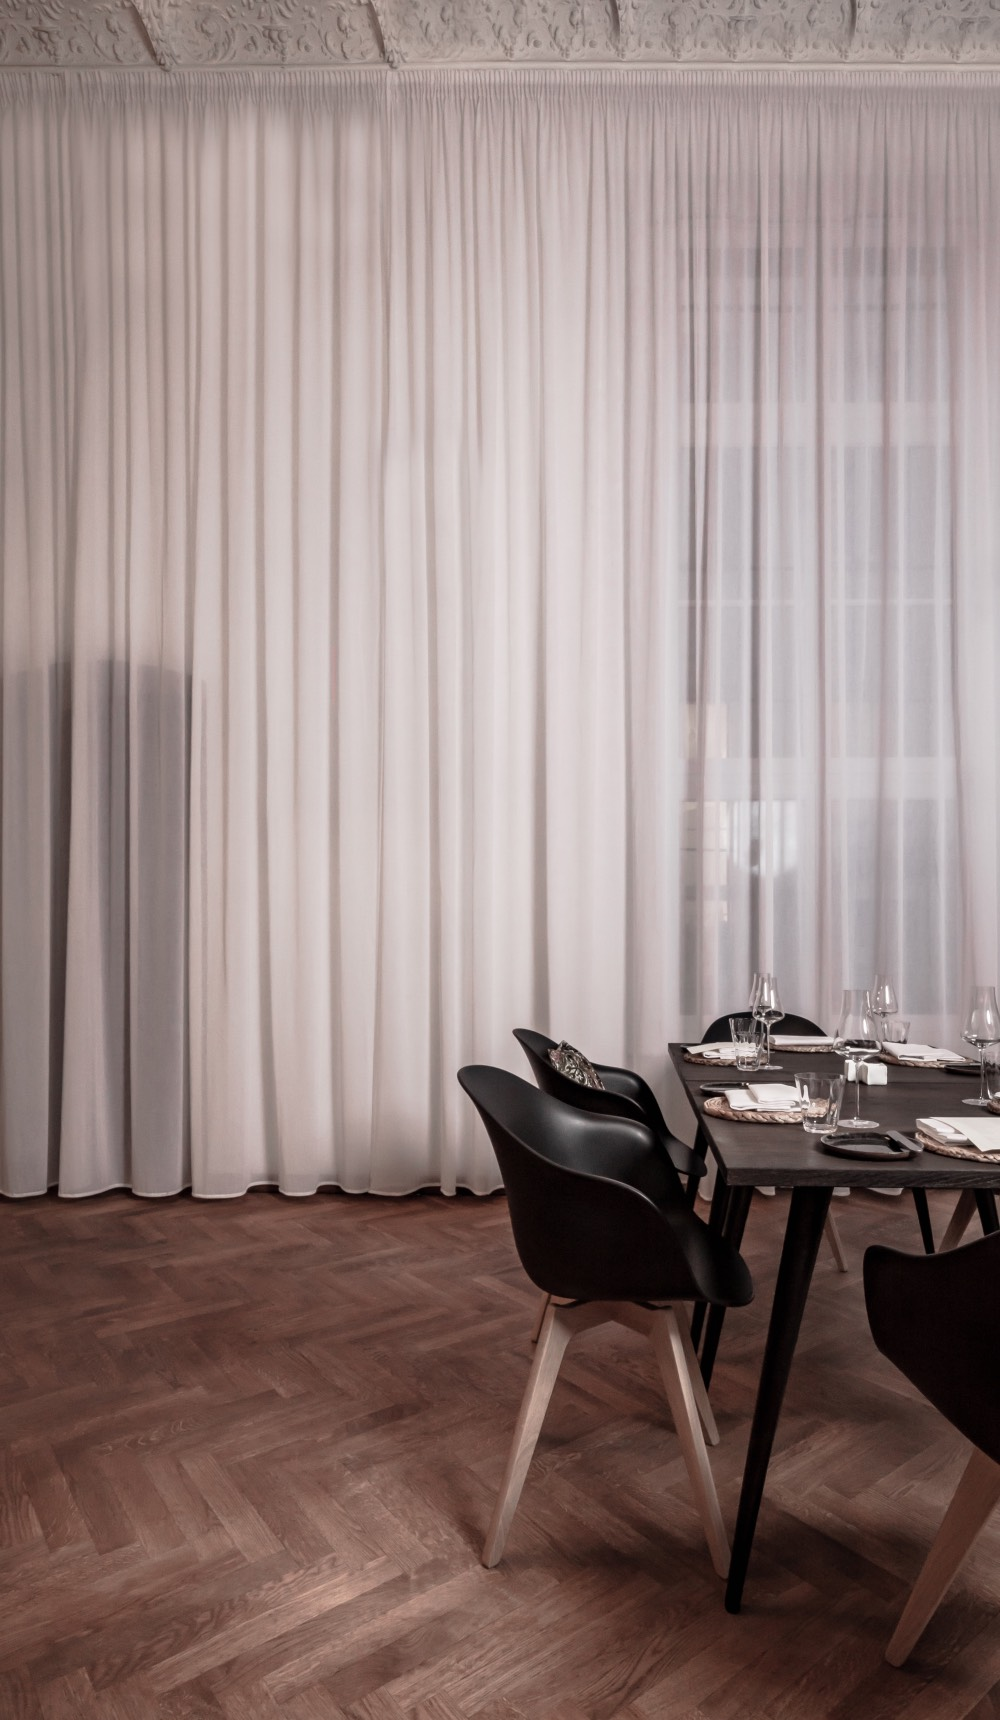 no-name-berlin-restaurace-fine-dinning-interier-2